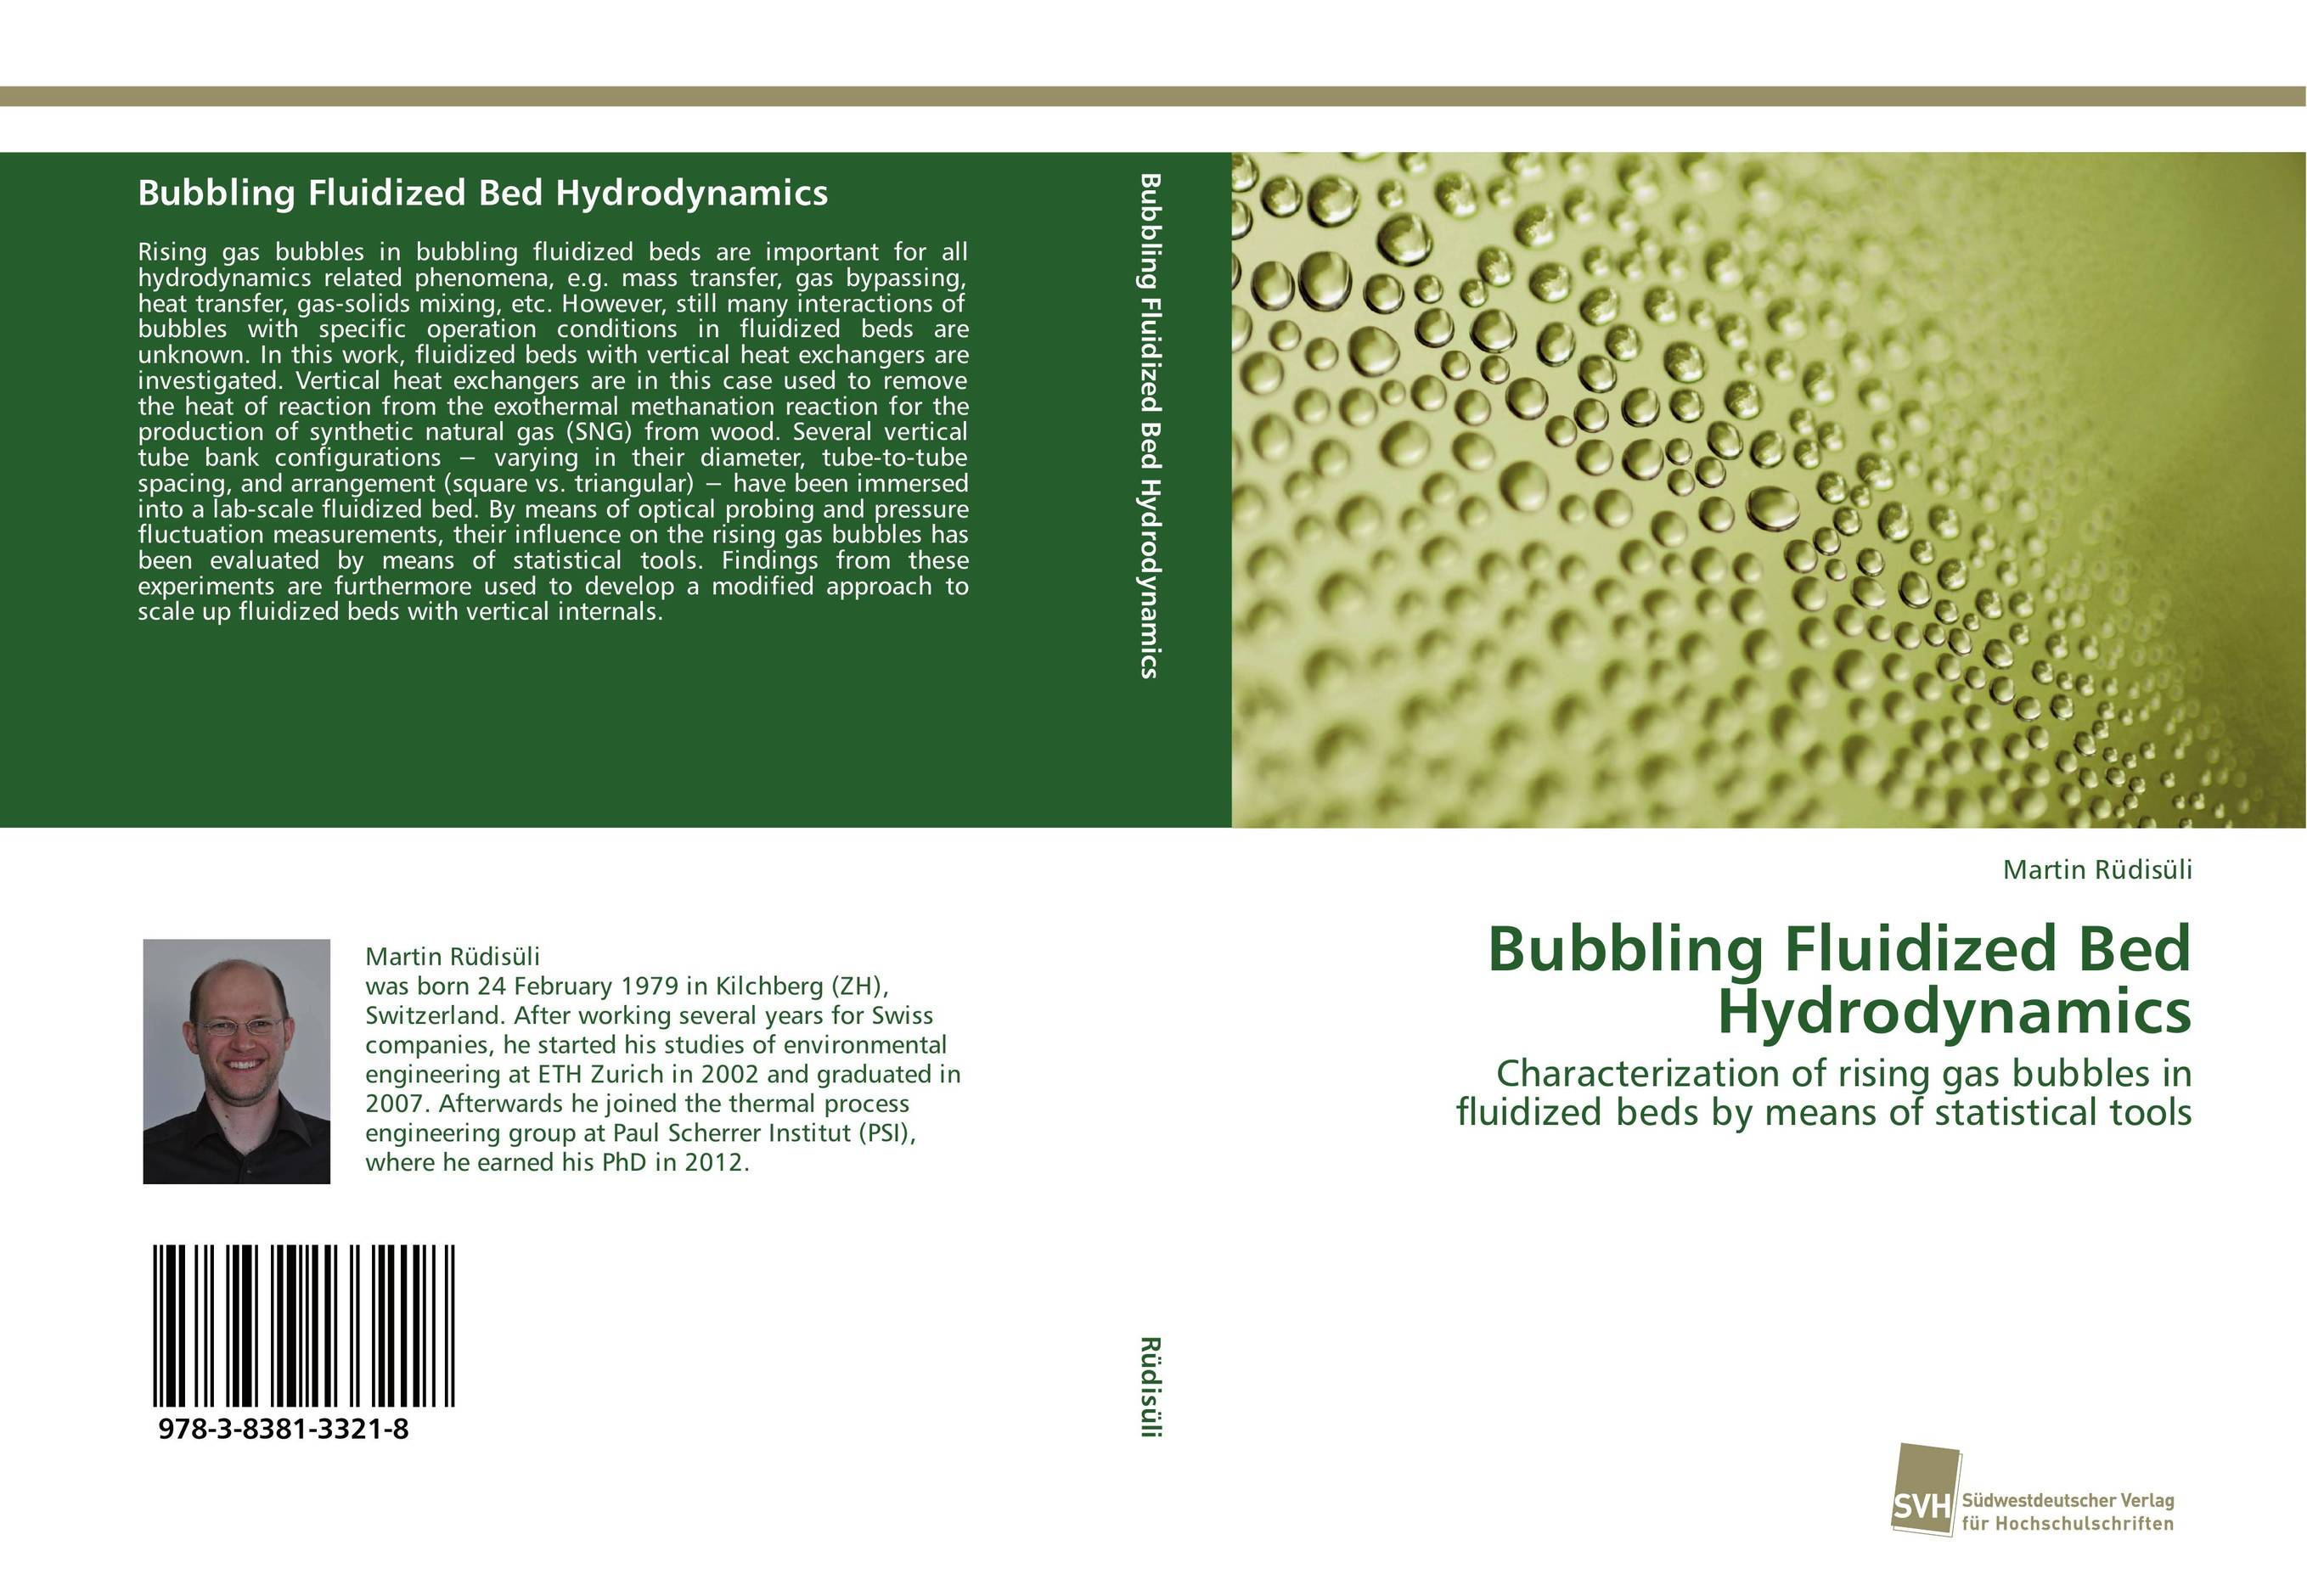 Bubbling Fluidized Bed Hydrodynamics compartmented fluidized bed gasifier